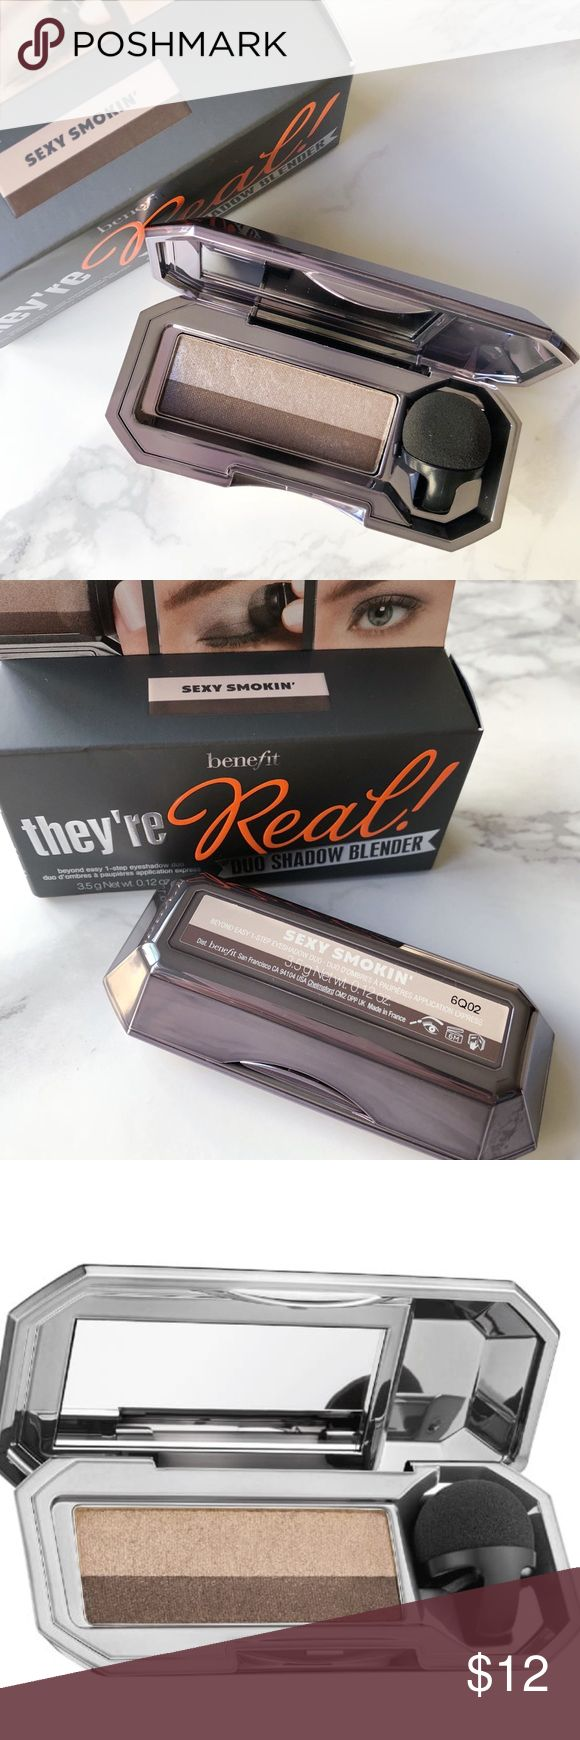 Benefit Eyeshadow Duo in Sexy Smokin' Brand new in box! Sexy Smokin' features a pewter sheen with a soft matte charcoal brown. Benefit Makeup Eyeshadow